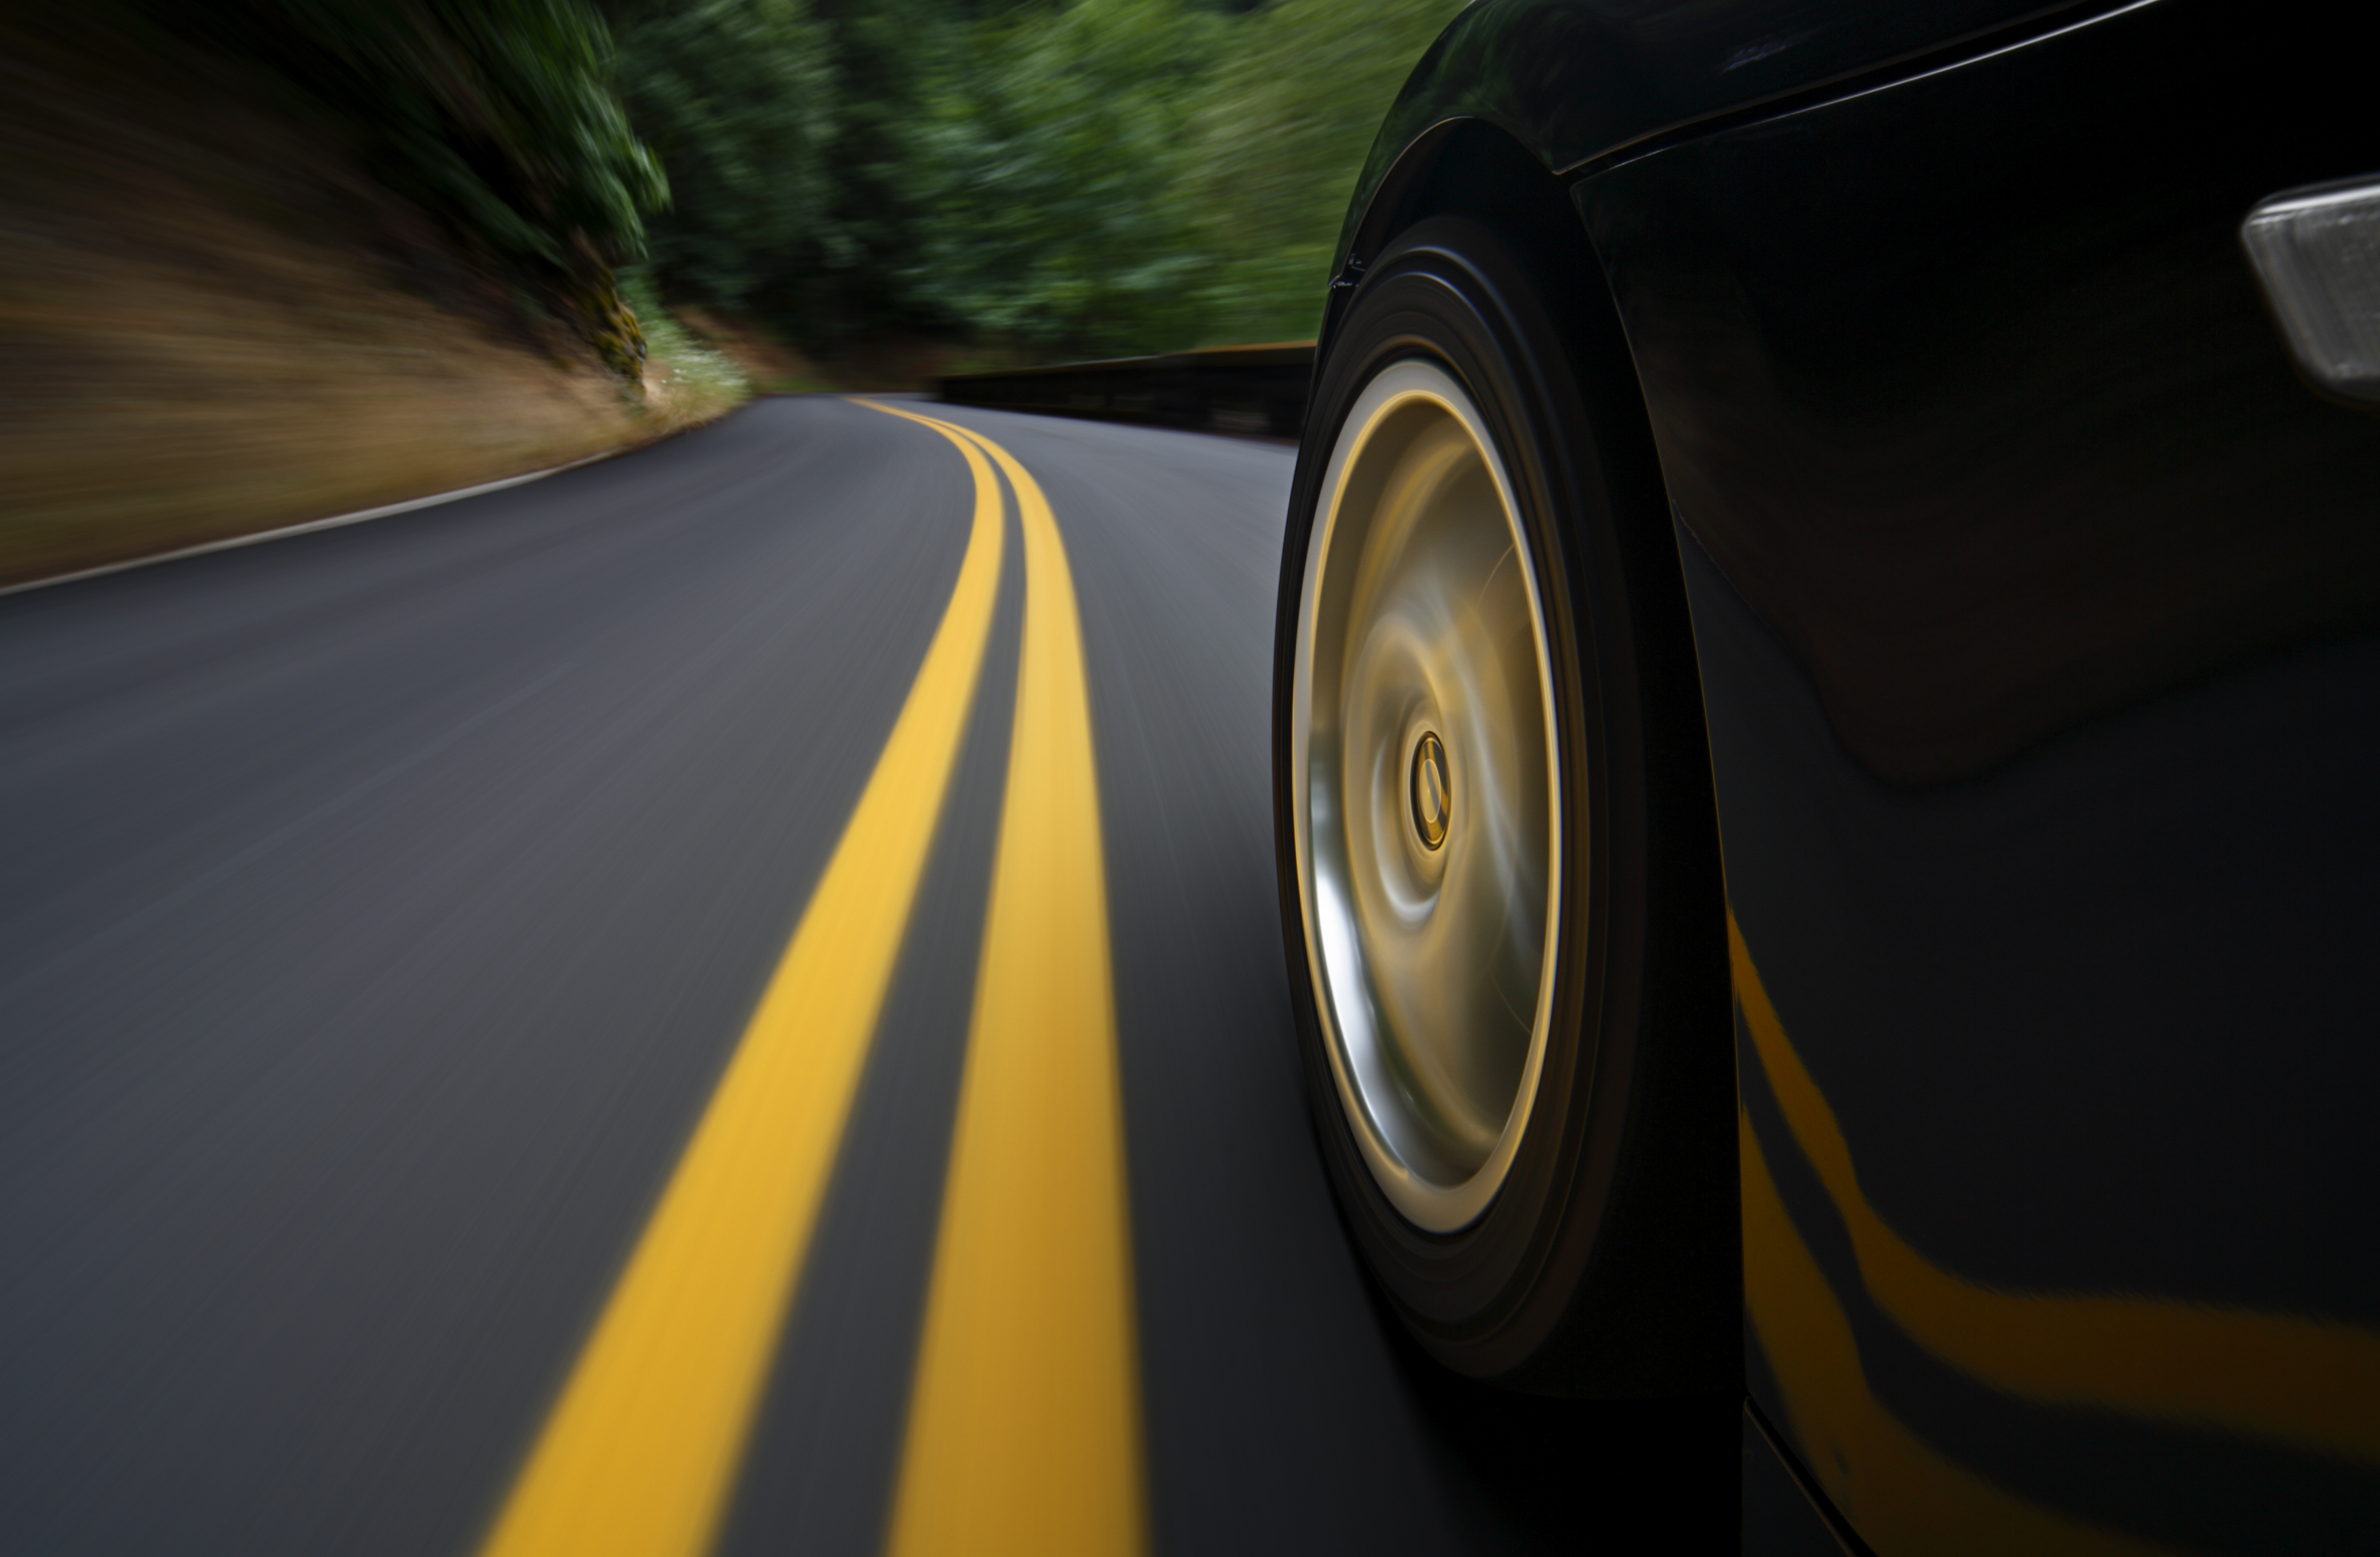 Investment management: Where the rubber meets the road